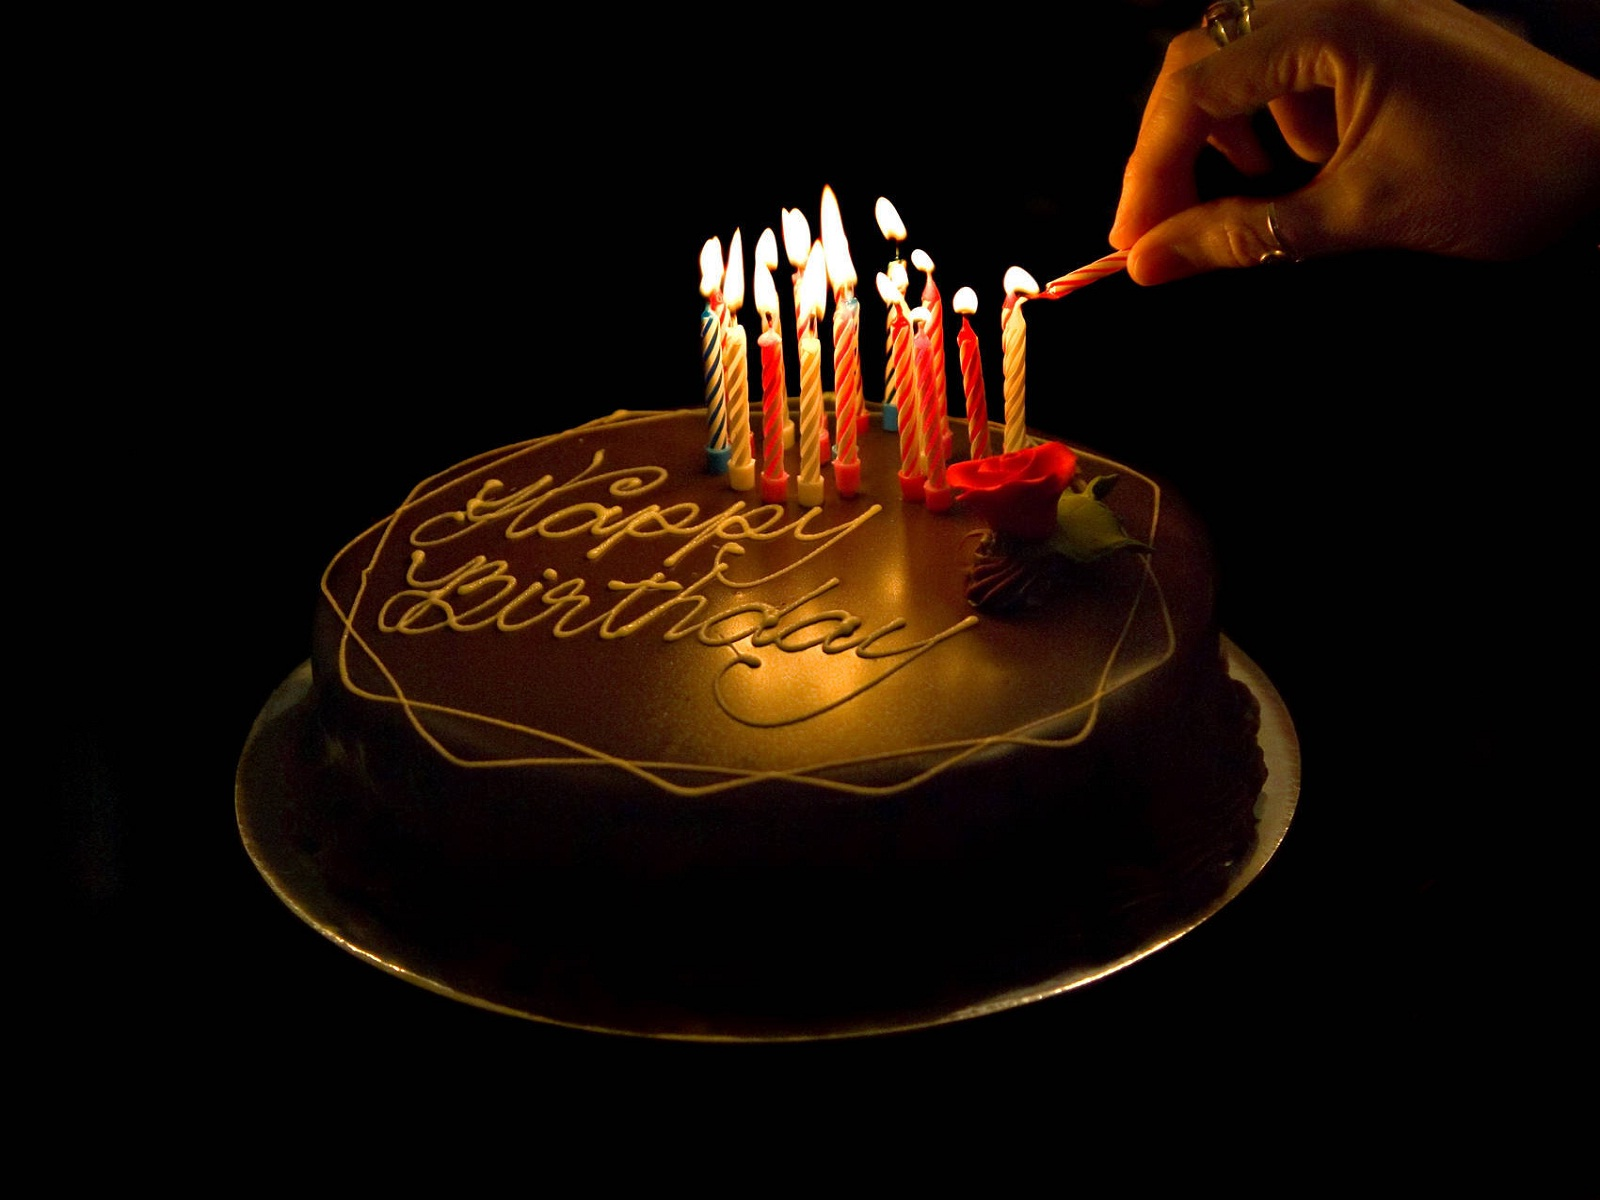 Images Of Birthday Cakes With Candles And Wishes